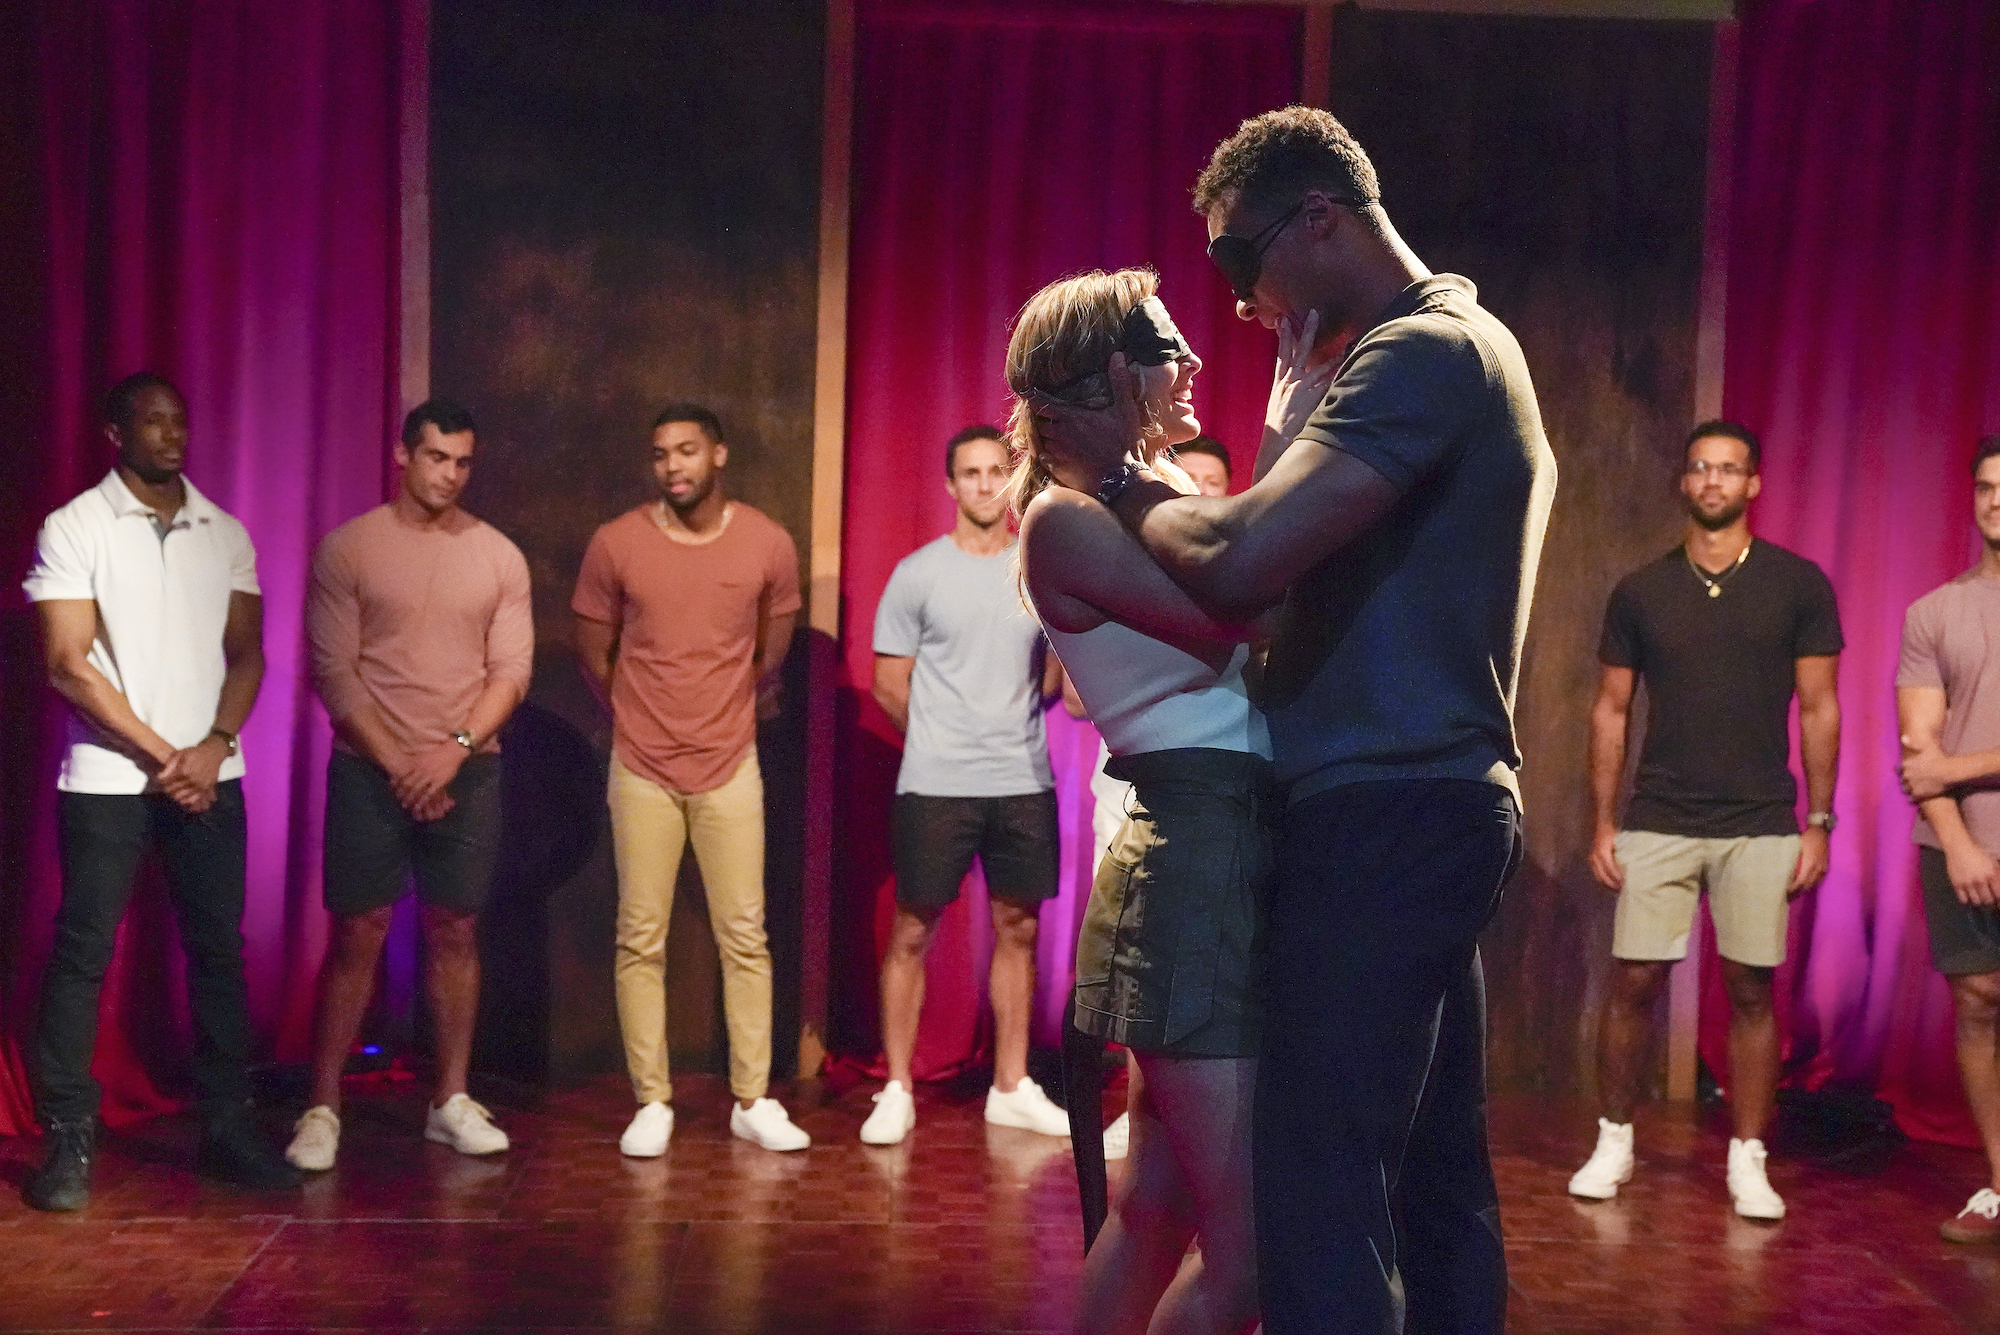 Clare Crawley and Dale Moss during Week 2's group date on 'THE BACHELORETTE'